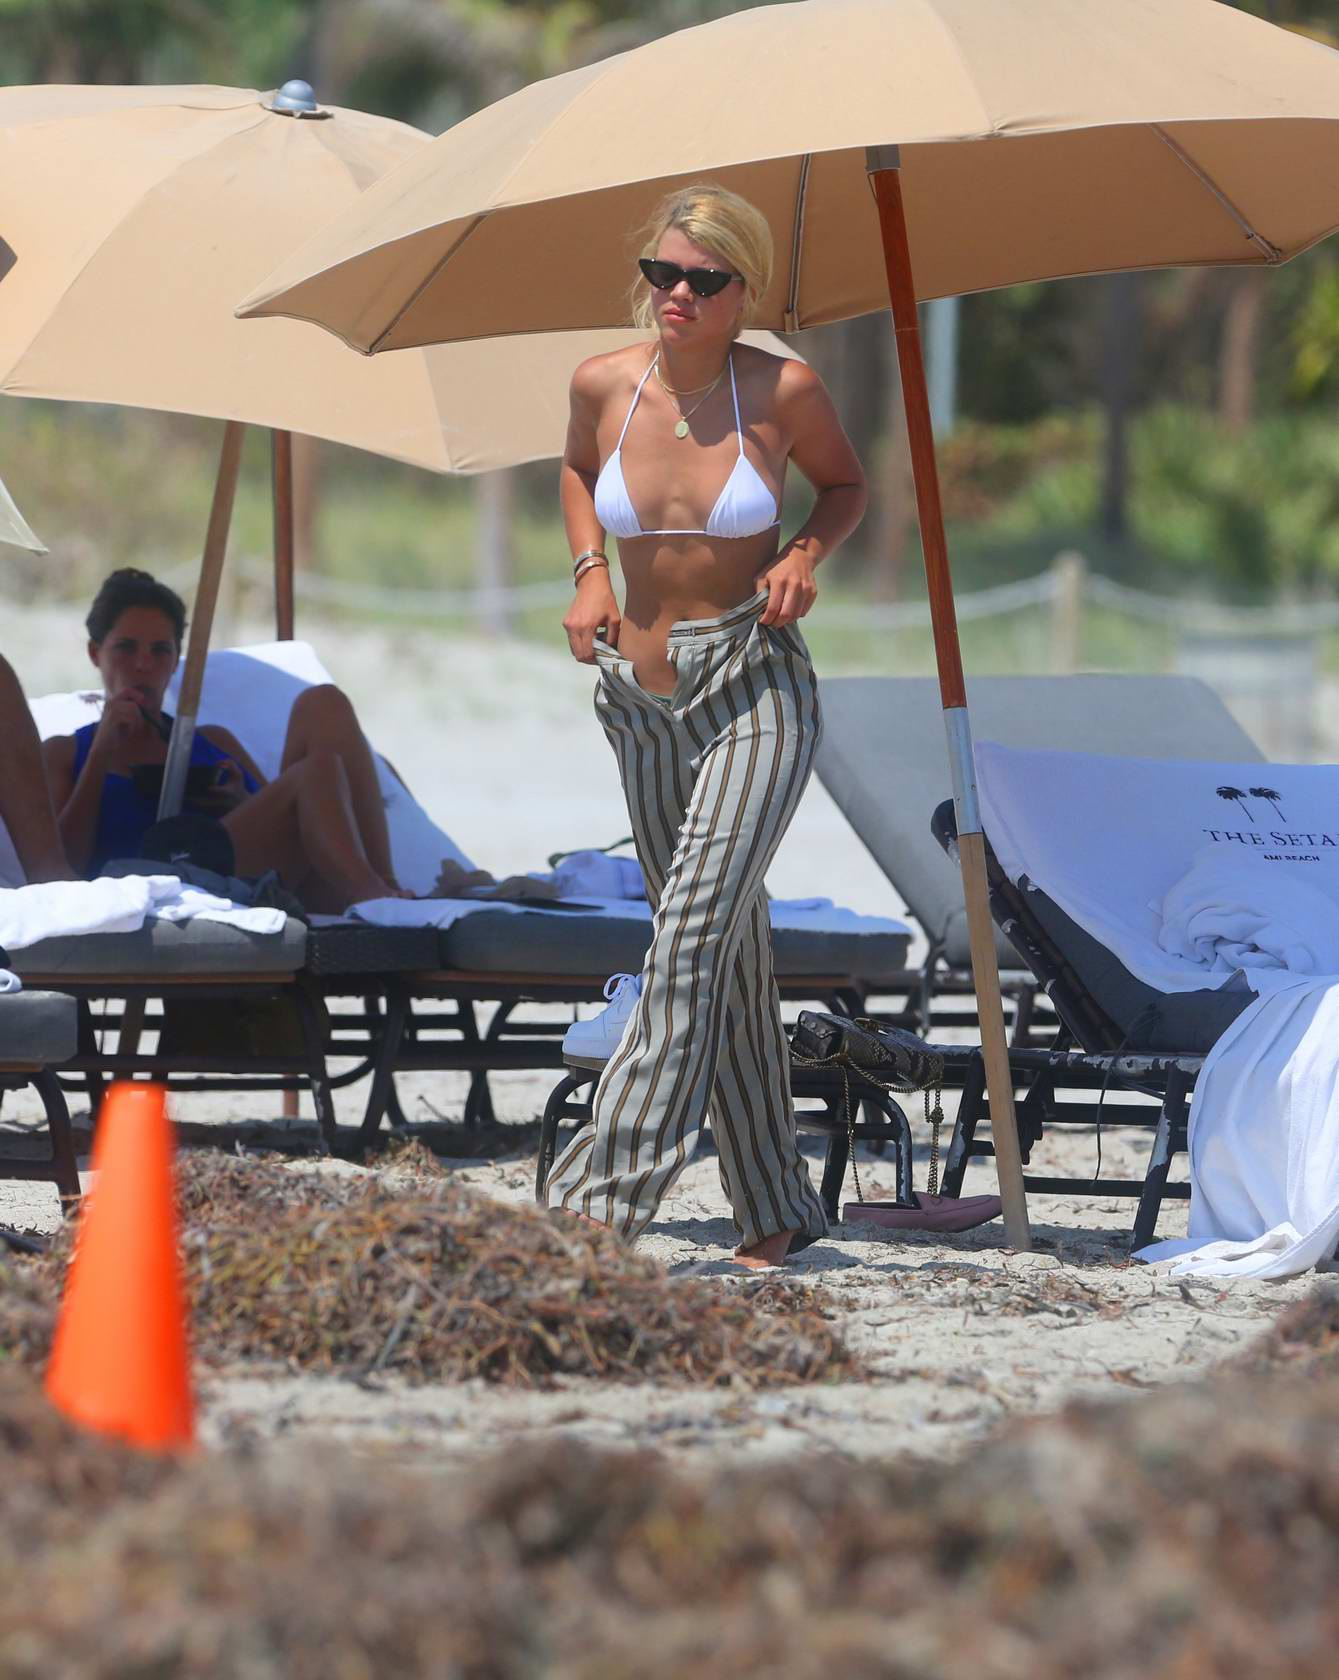 Sofia Richie and Scott Disick spotted relaxing by the poolside in Miami